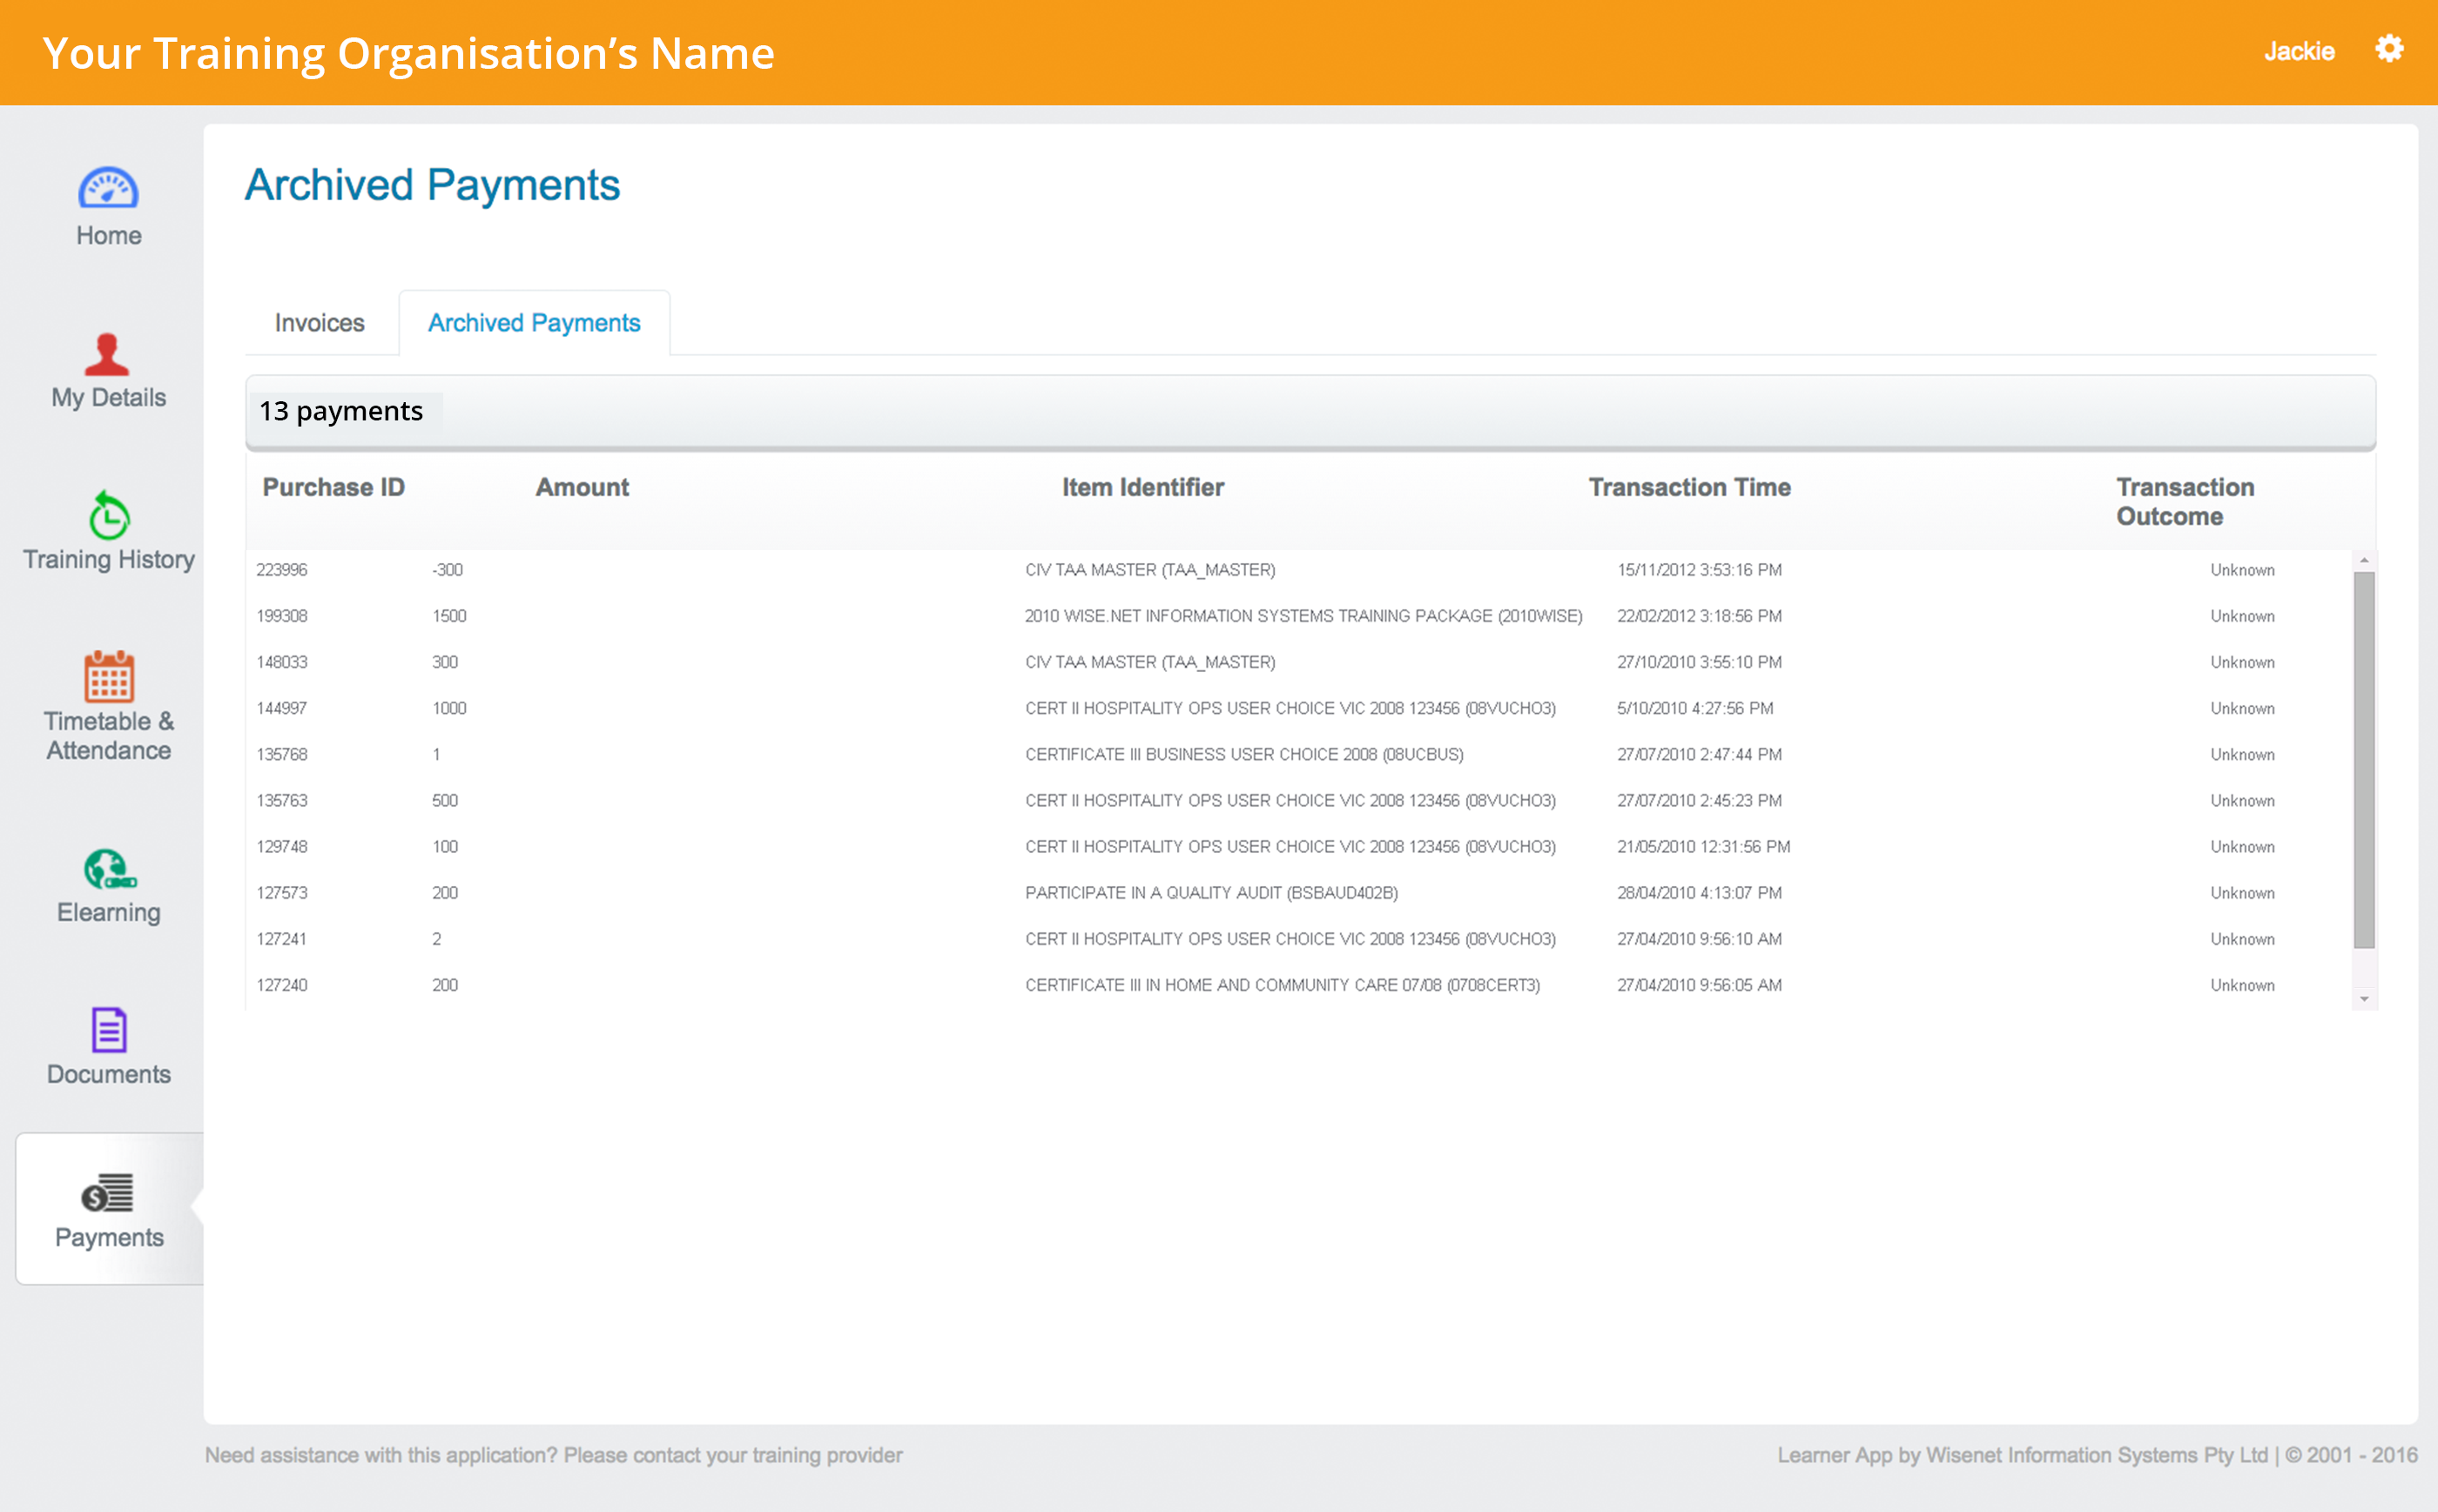 Learner-App-New-Orange_Archived-Payments.png